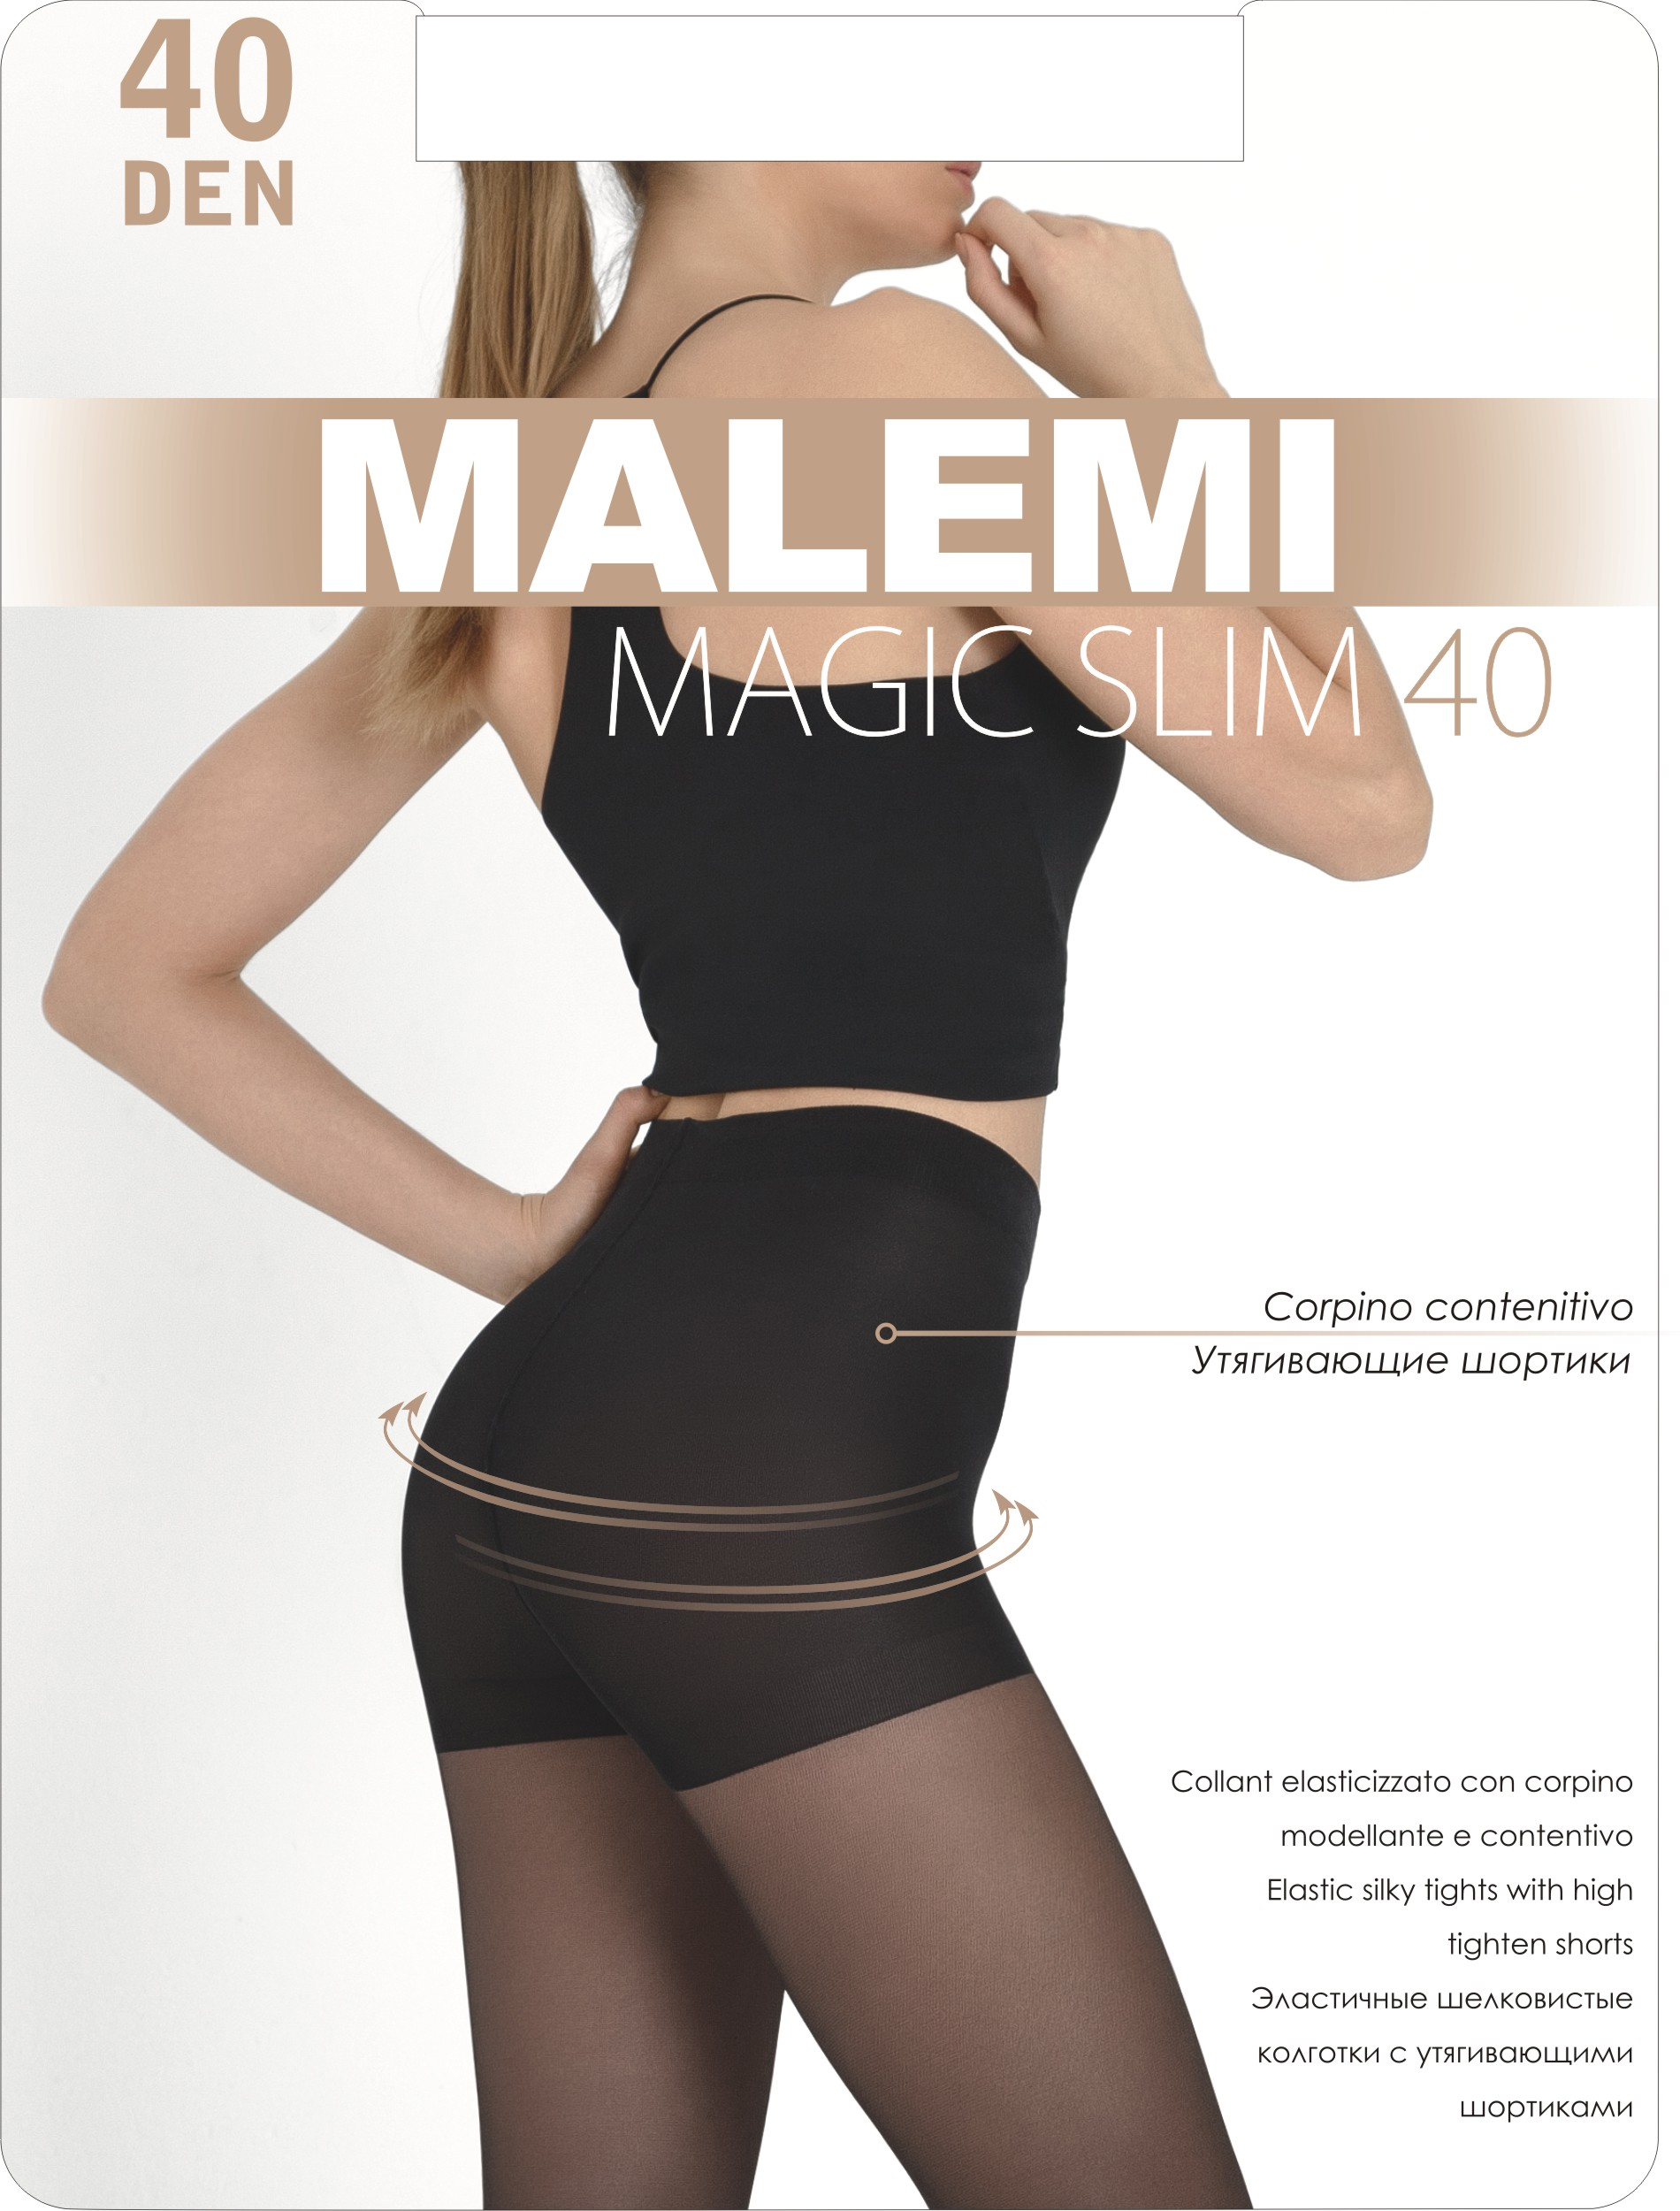 MALEMI Magic Slim 40